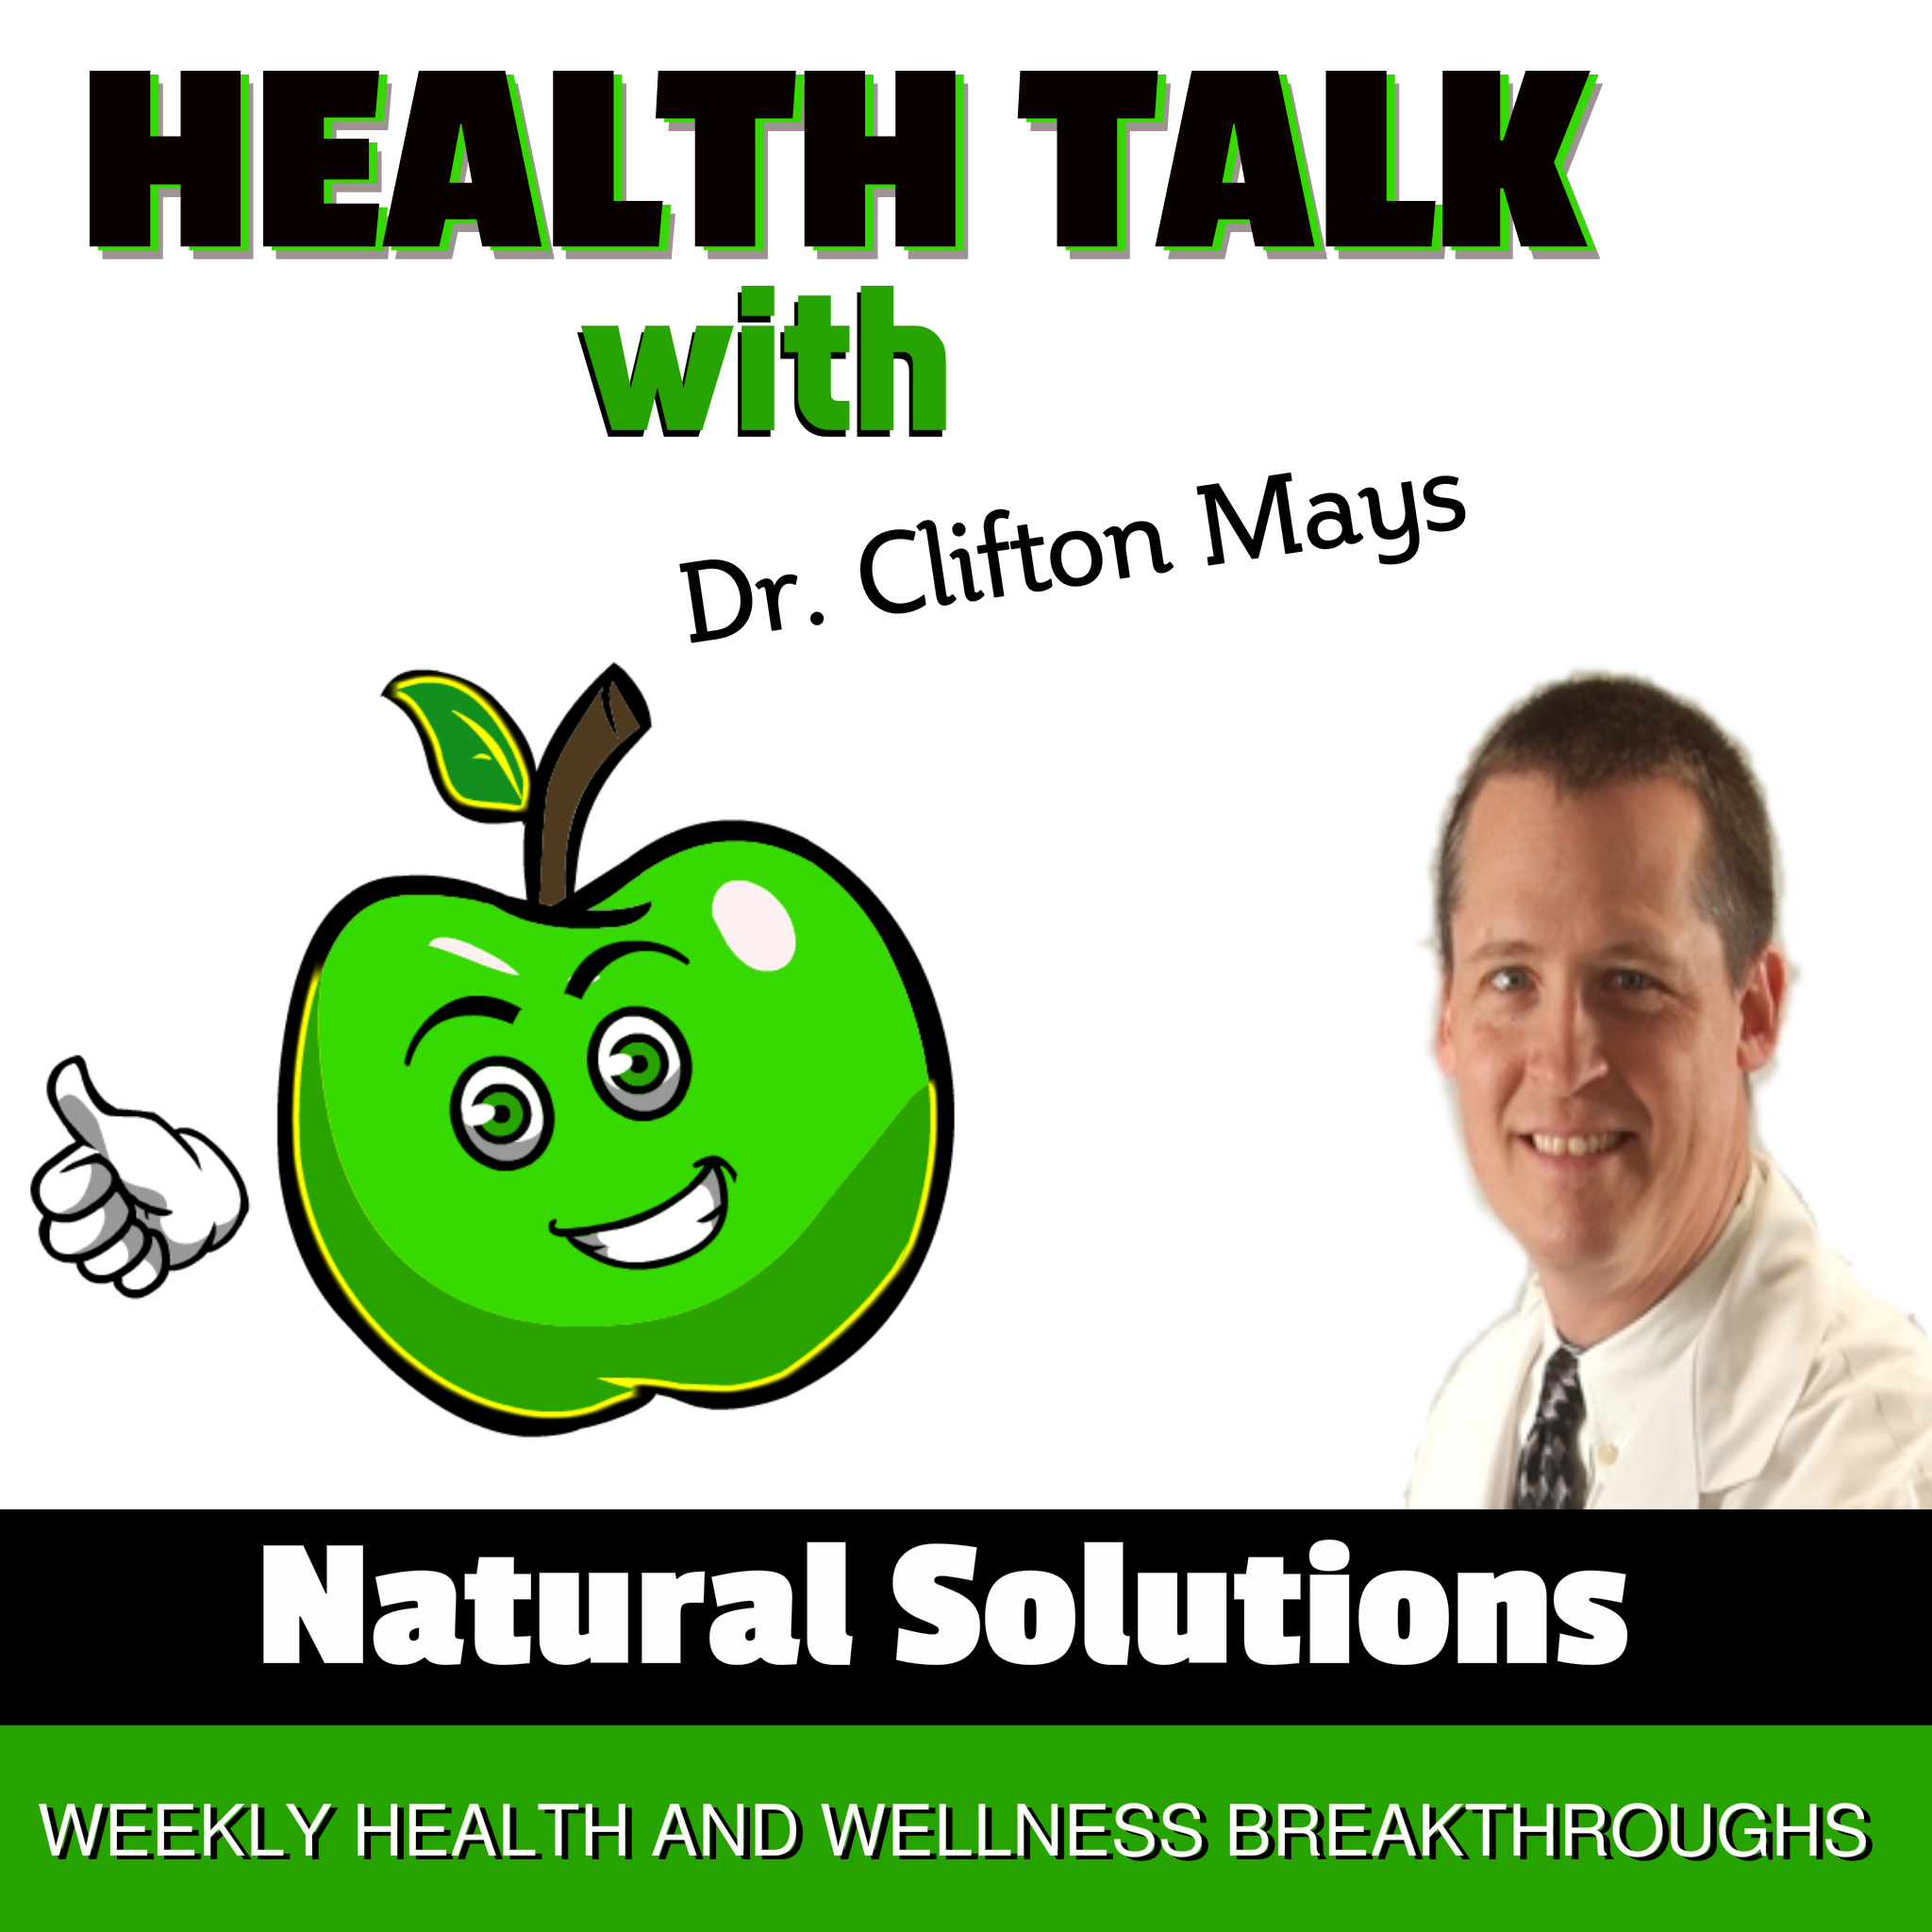 Health Talk With Dr. Clifton Mays